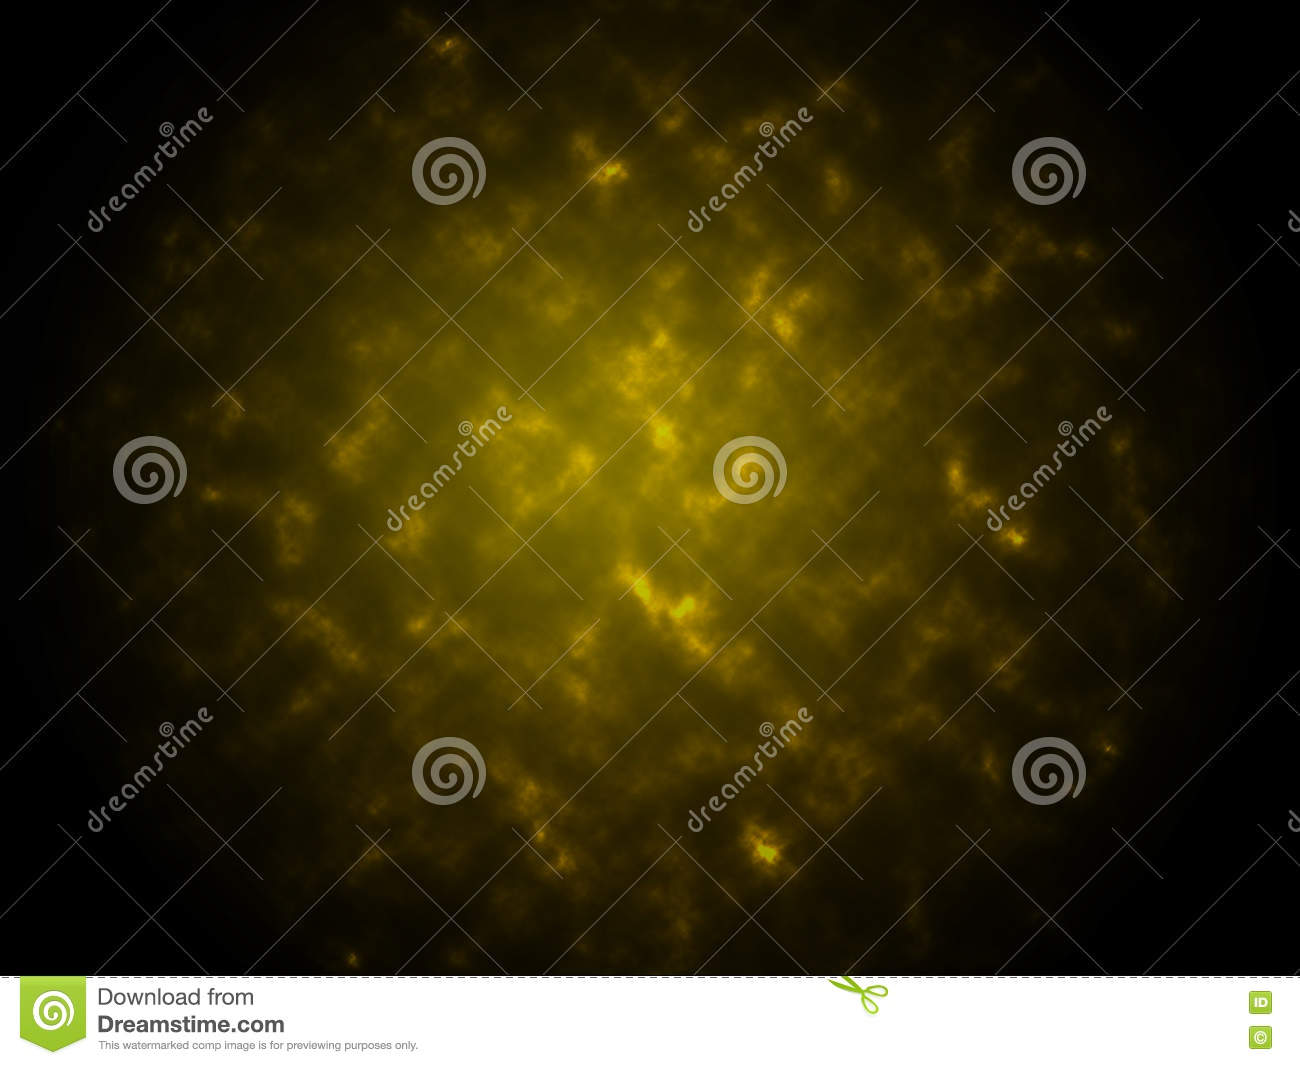 Smoke texture abstract yellow background